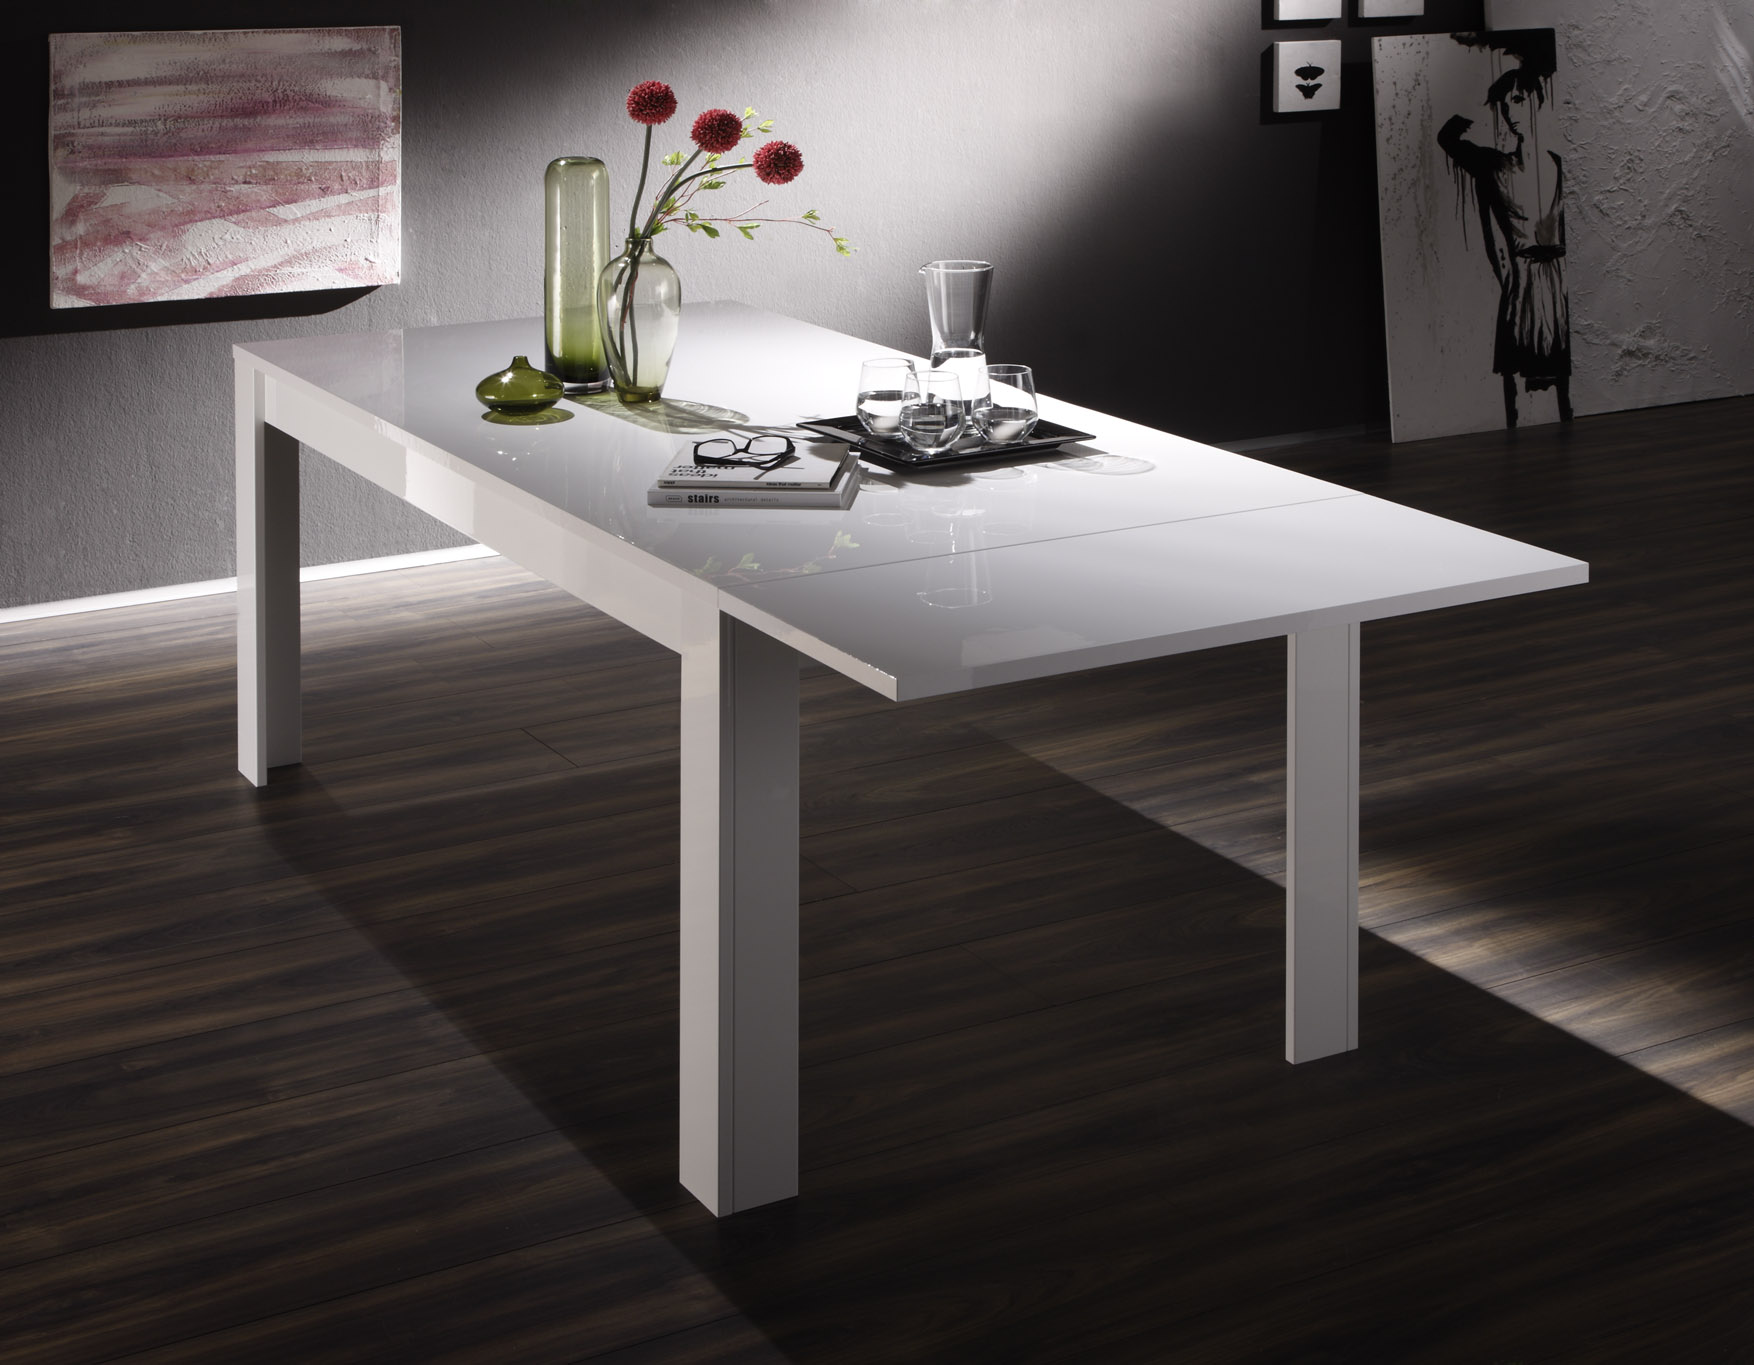 Table de salle manger design laqu blanc judy matelpro for Table de salle a manger design